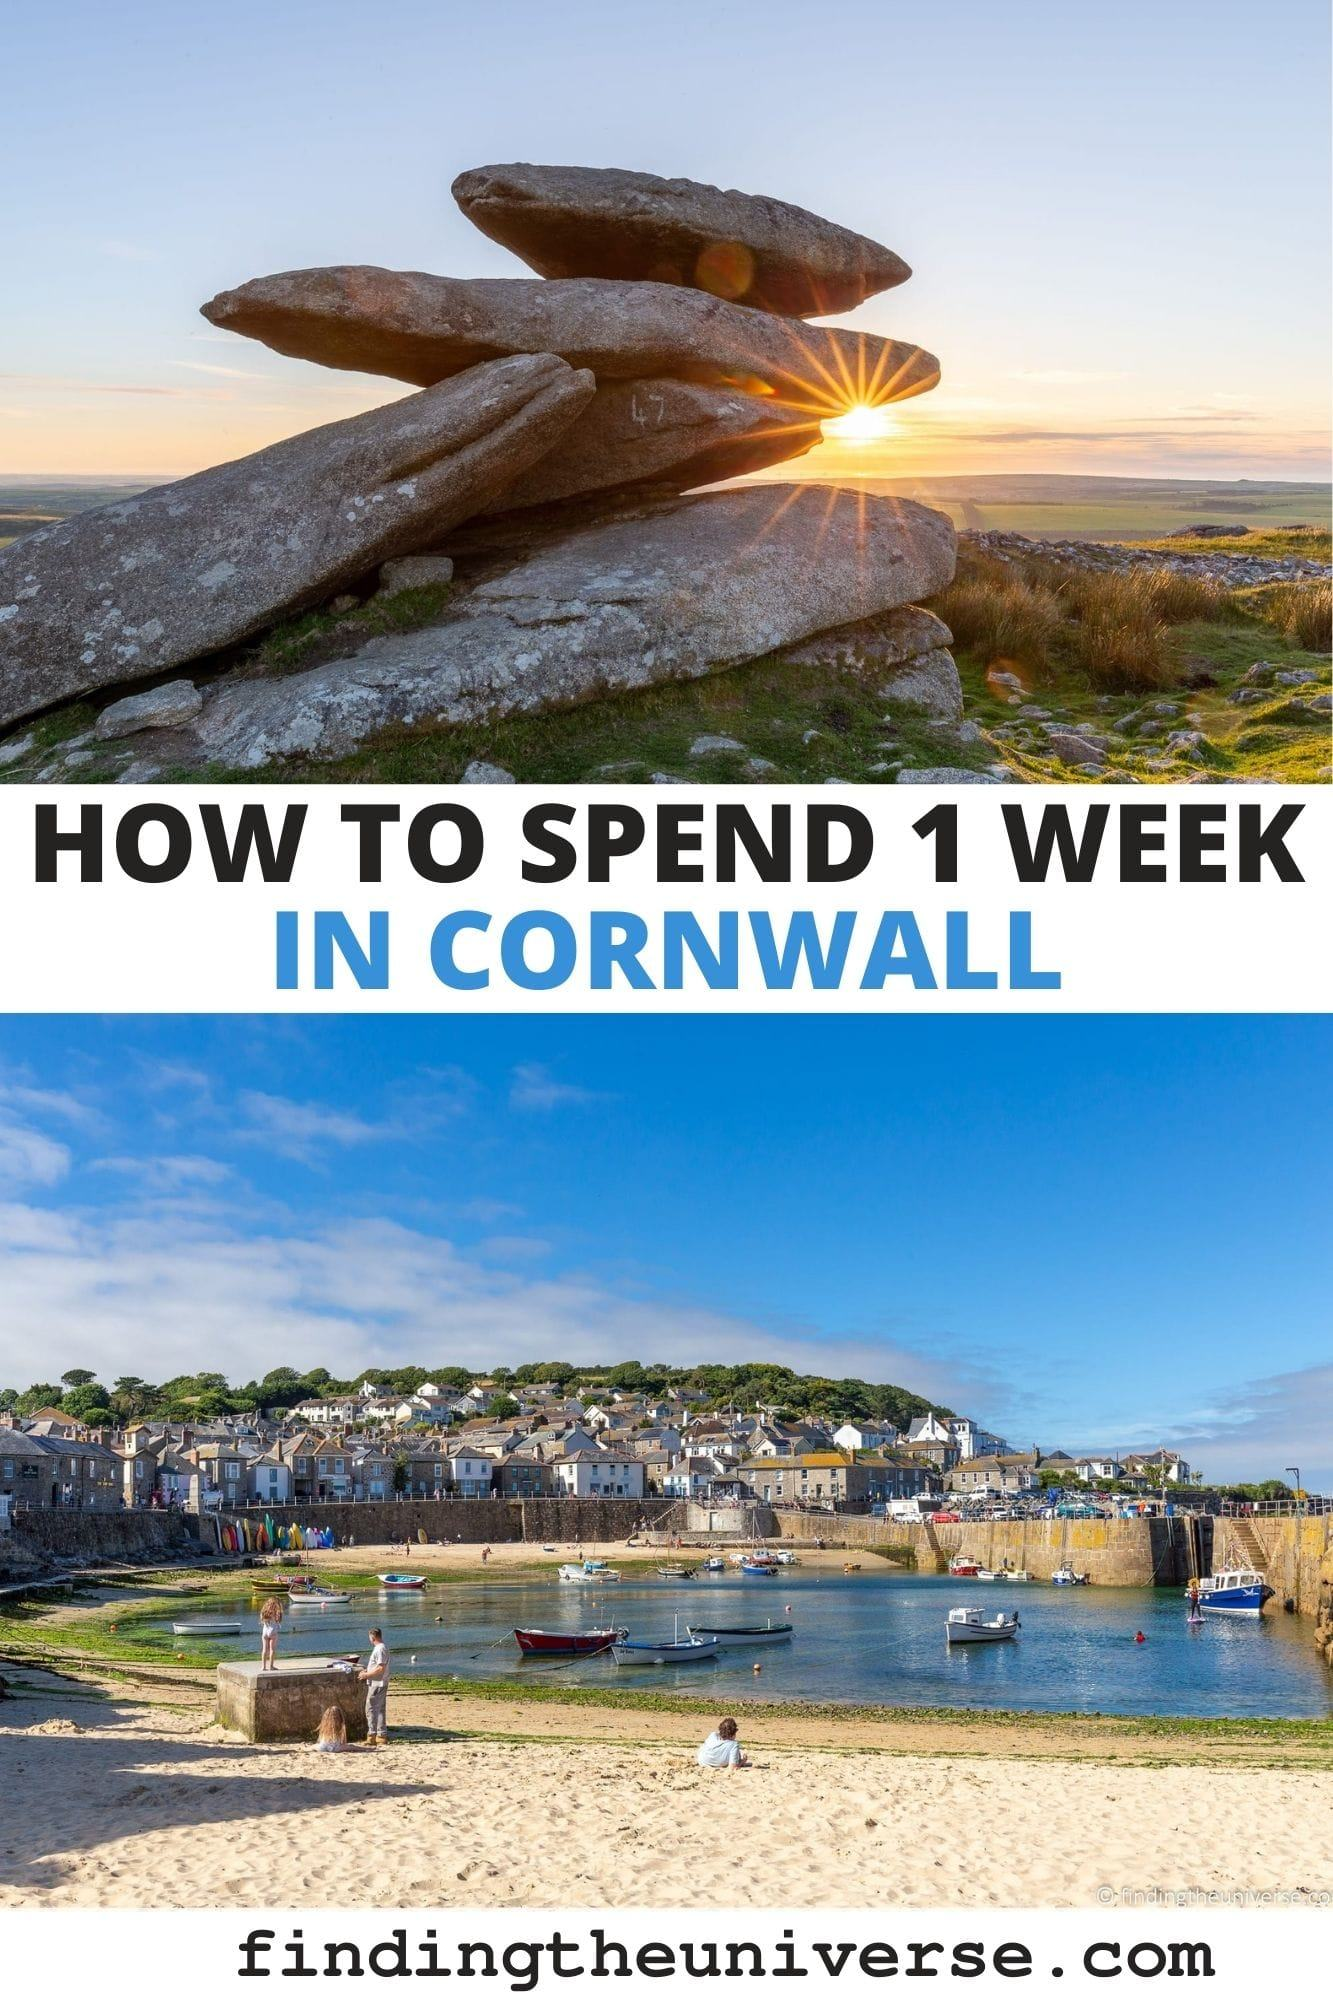 A detailed overview of how to spend 1 week in Cornwall. Cornwall itinerary for 1 week, tips on where to stay and how to get around + more!